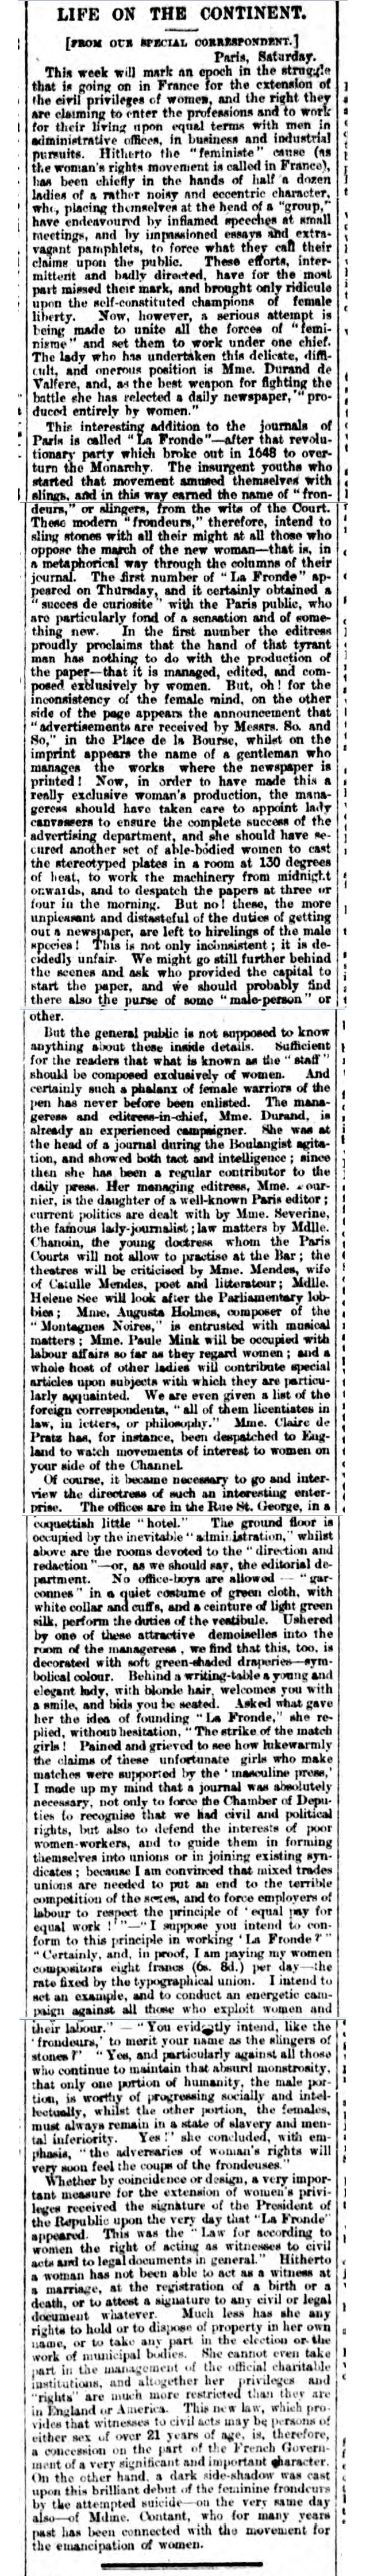 historical newspaper report on Marguerite Durand